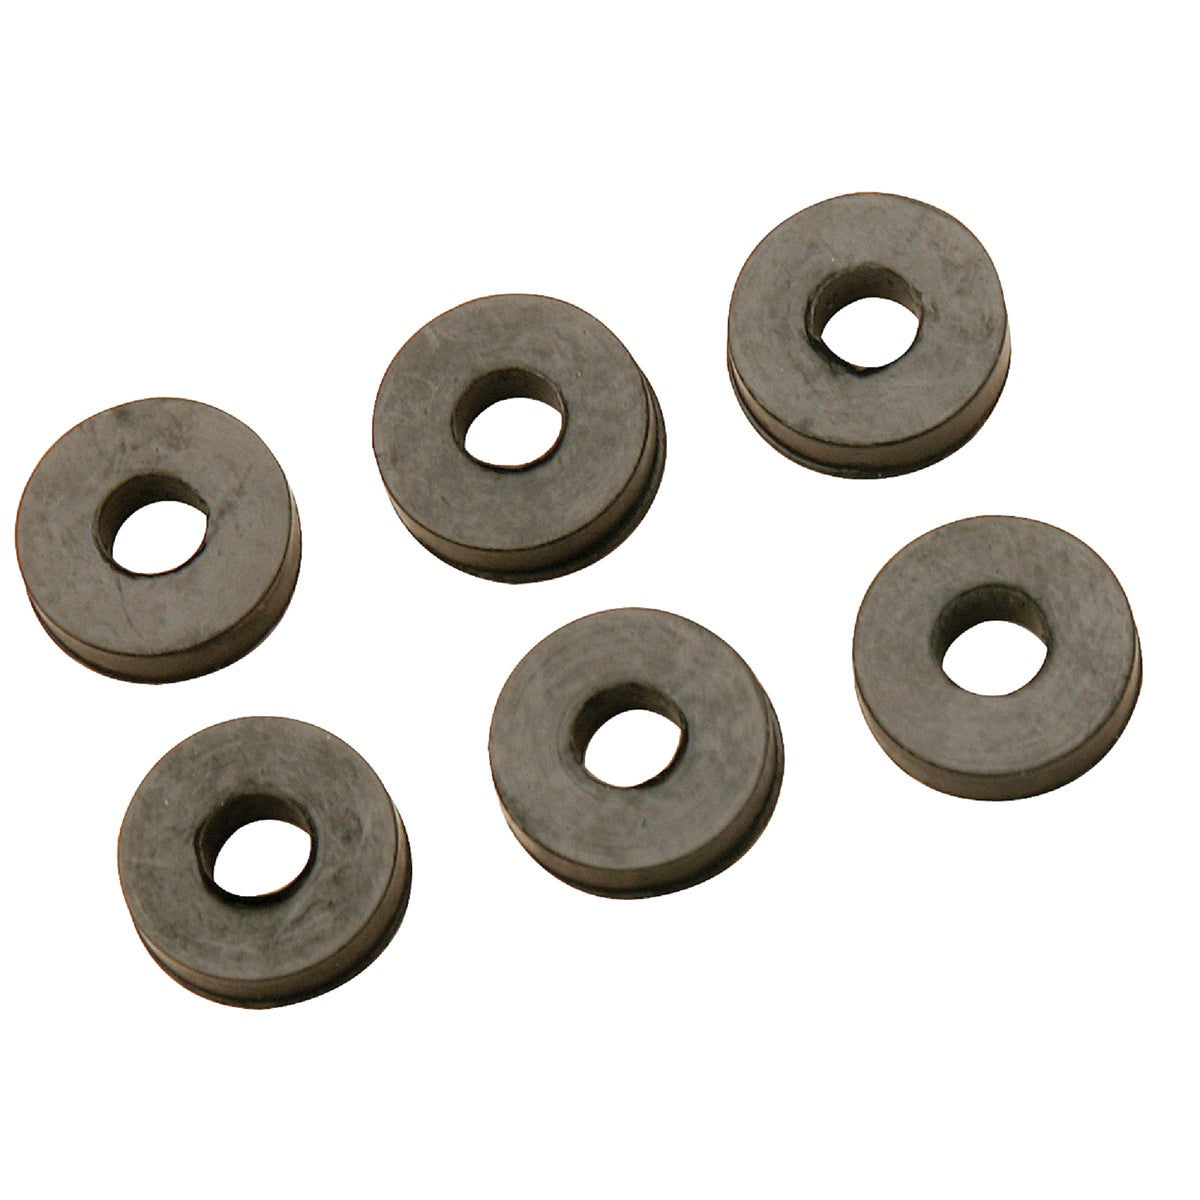 "6PK 1/4""L FLAT WASHER - 417249 by Plumb Pak/keeney Mfg"